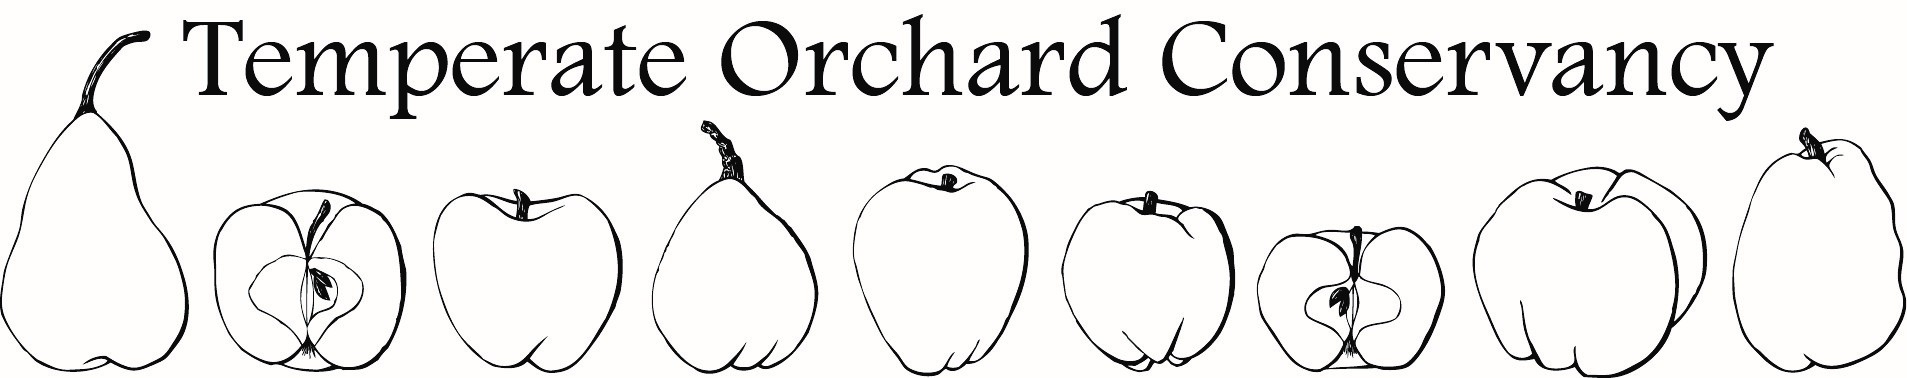 Temperate Orchard Conservancy